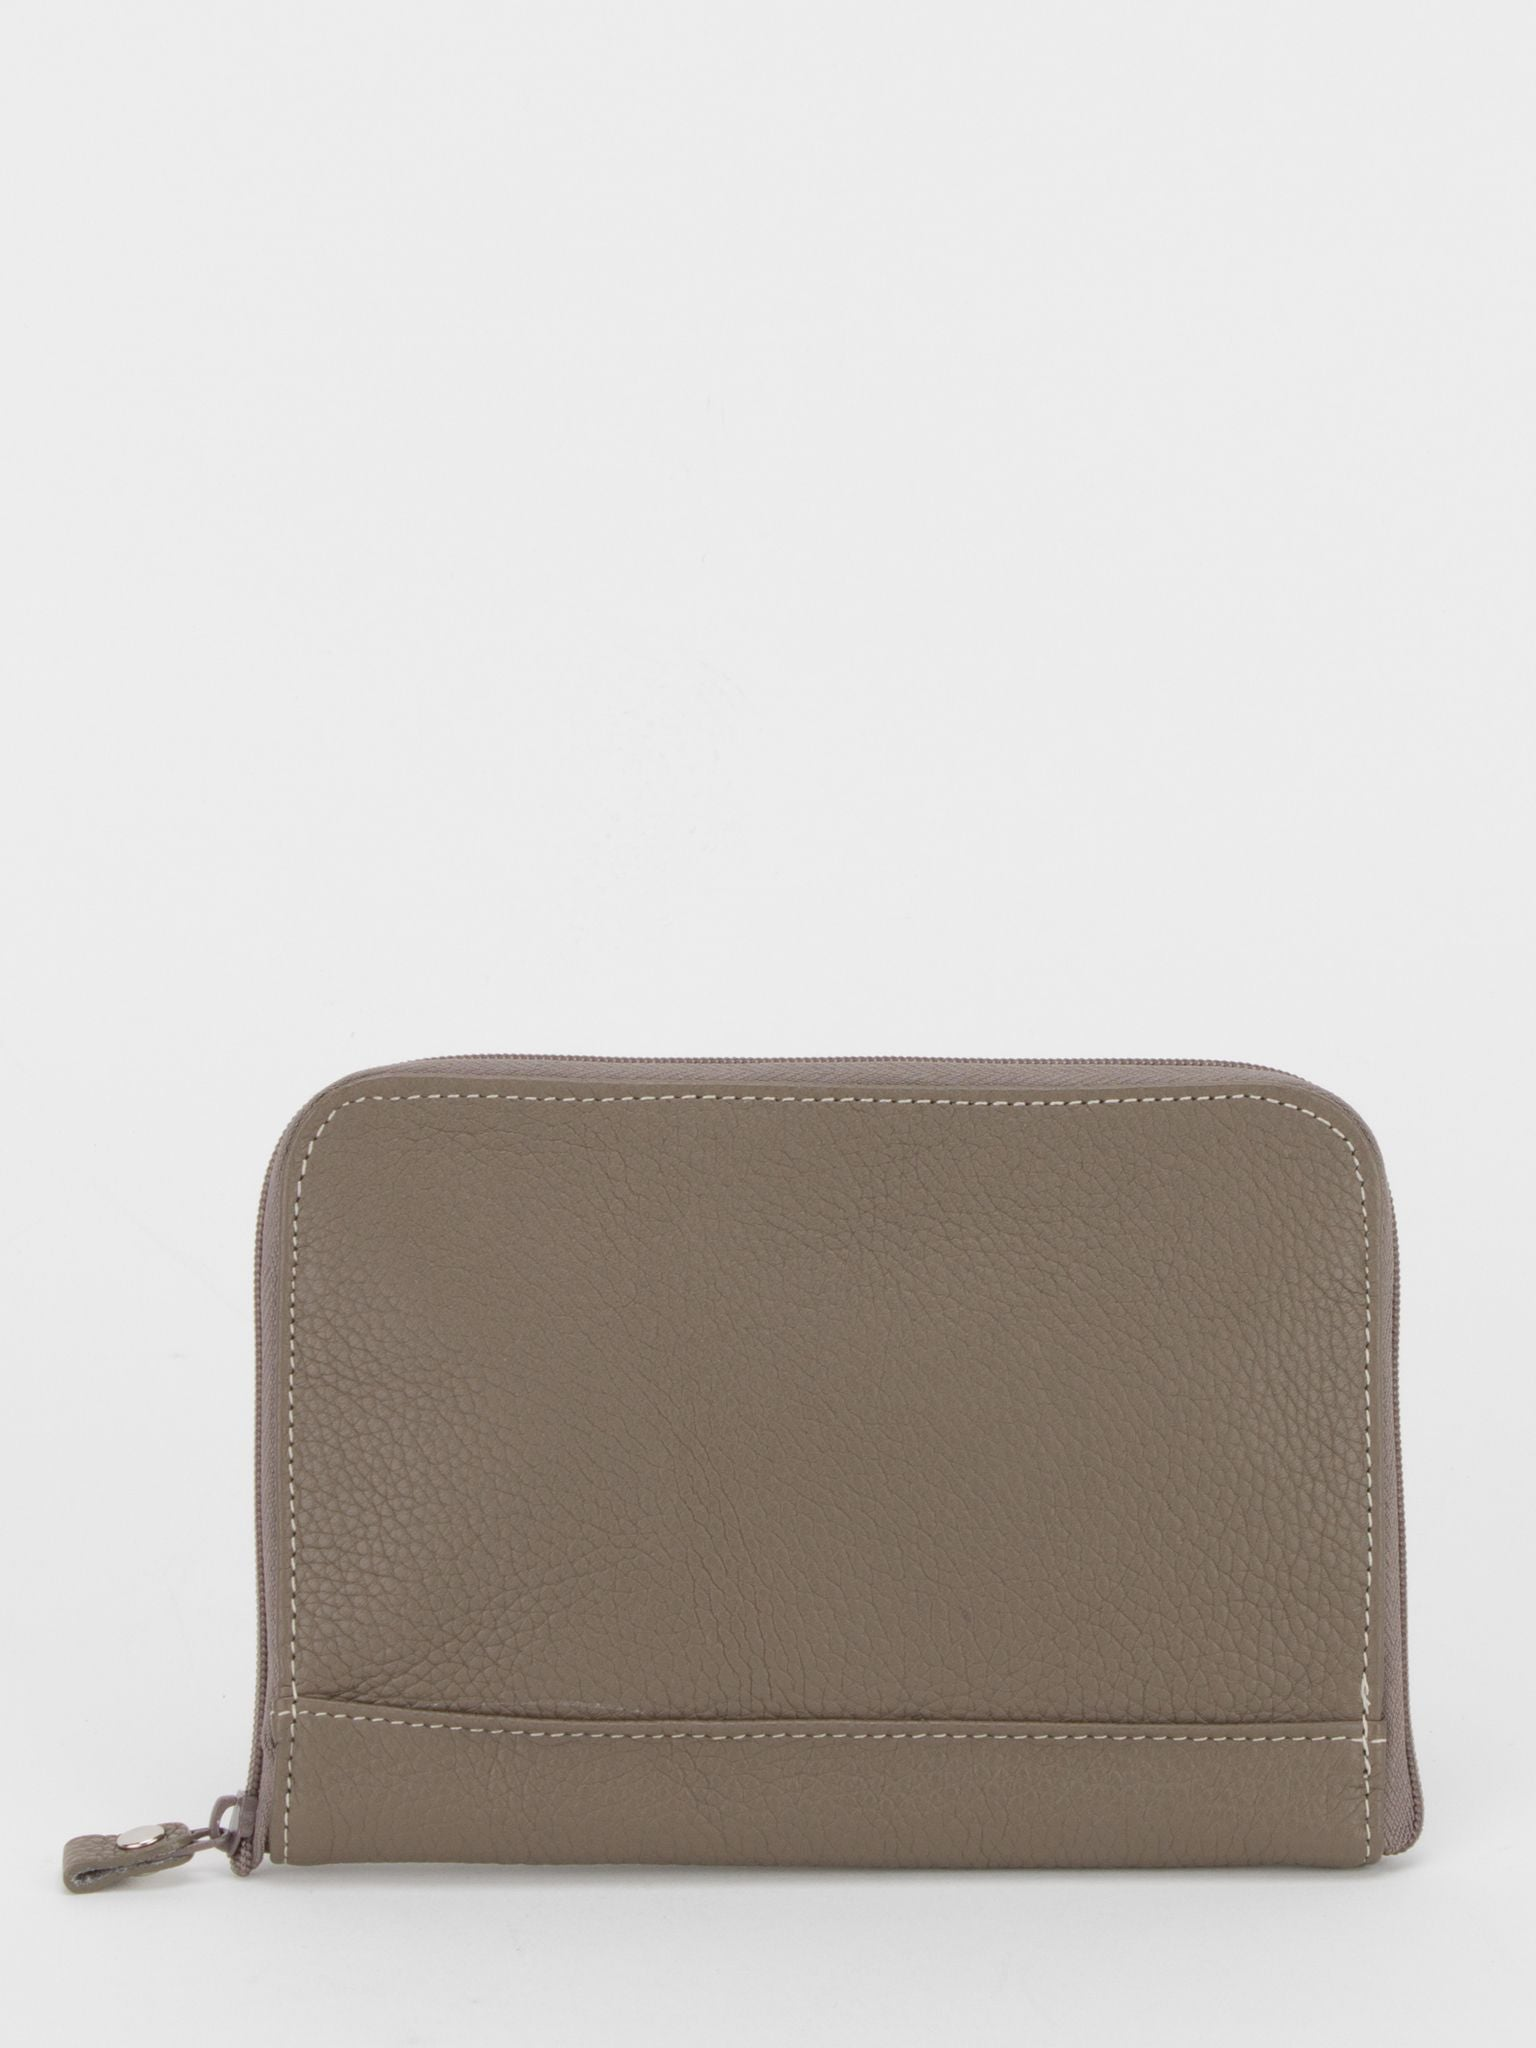 Jessica Leather Jewellery Pouch - Taupe